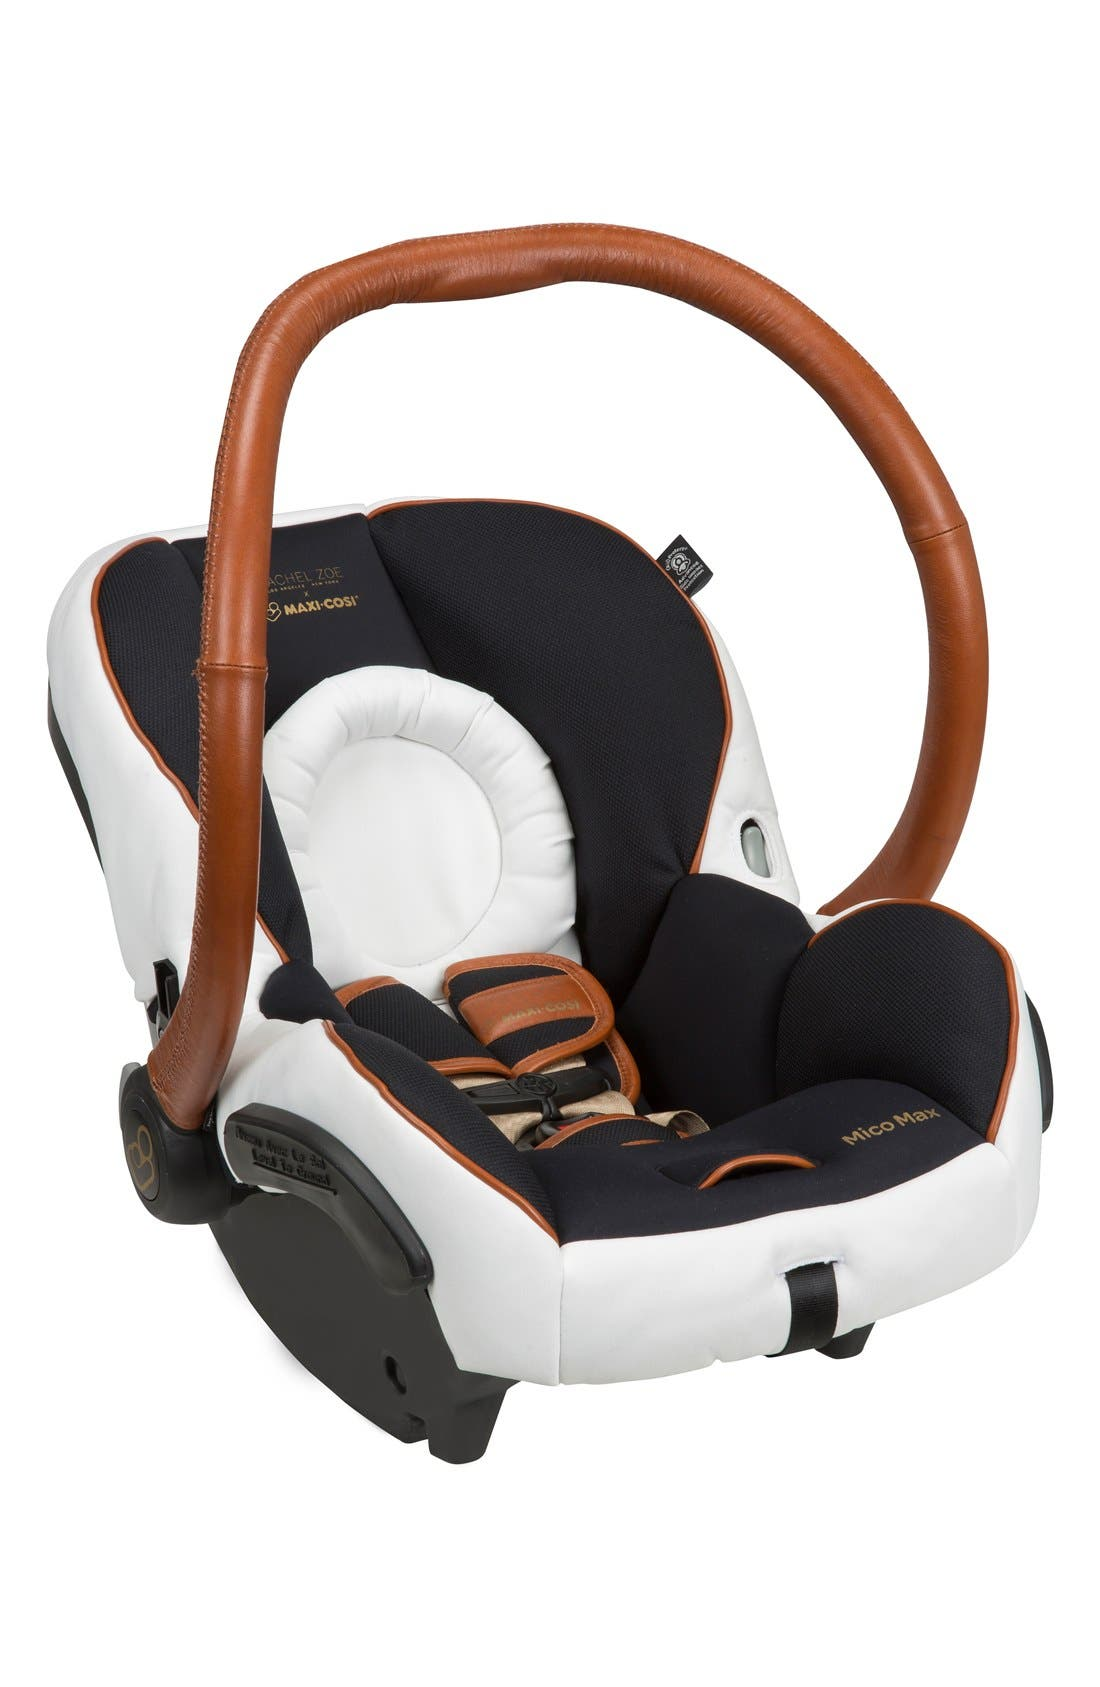 Maxi-Cosi® x Rachel Zoe Mico Max 30 - Special Edition Infant Car Seat